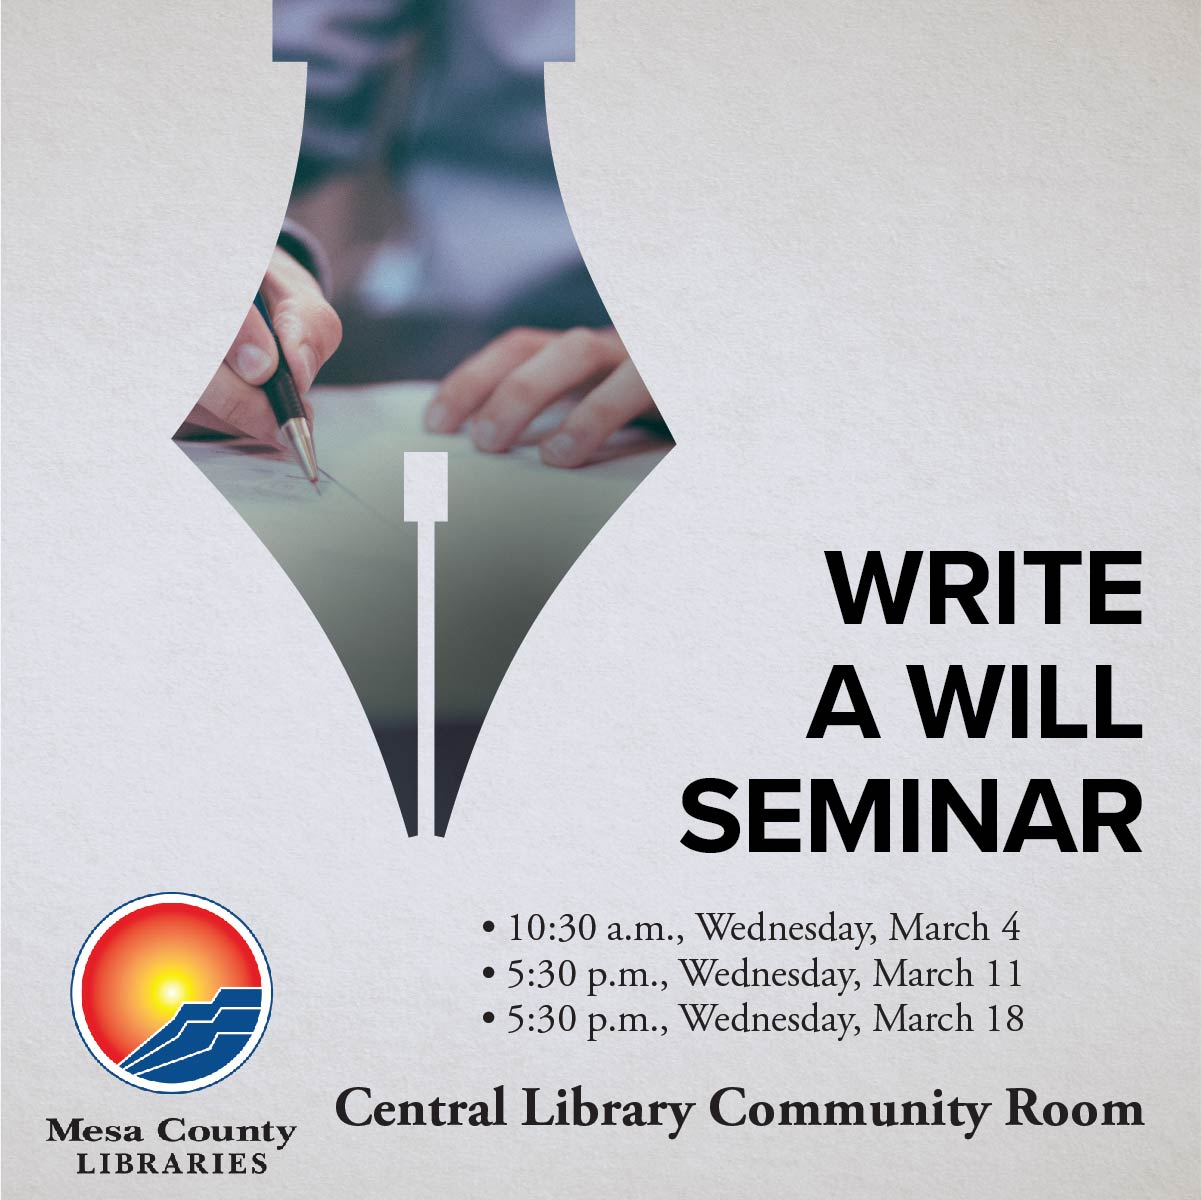 Write a Will Seminar poster with times and dates